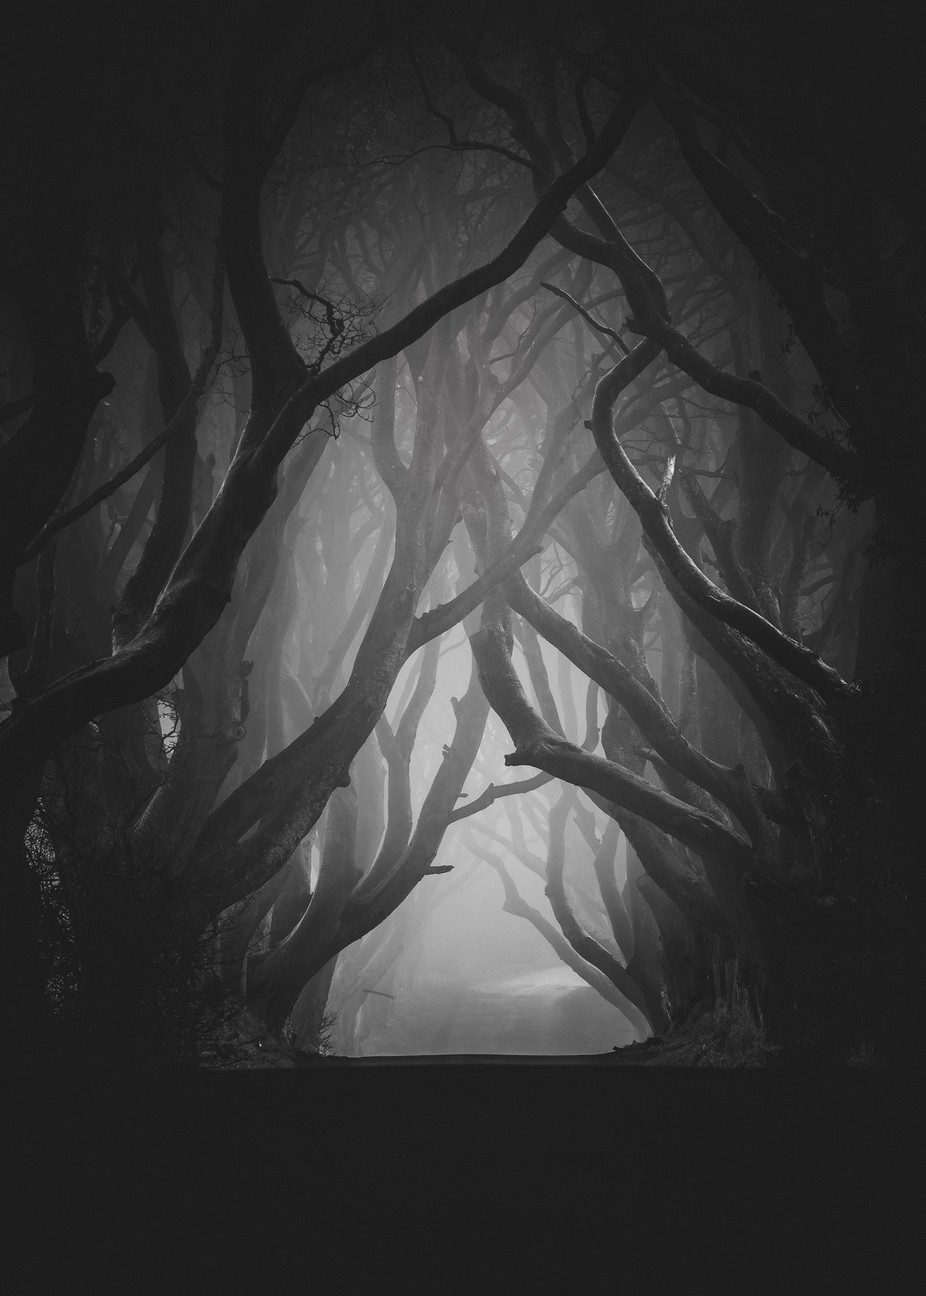 The Dark Hedges by pawelklarecki - Black And White Landscapes Photo Contest